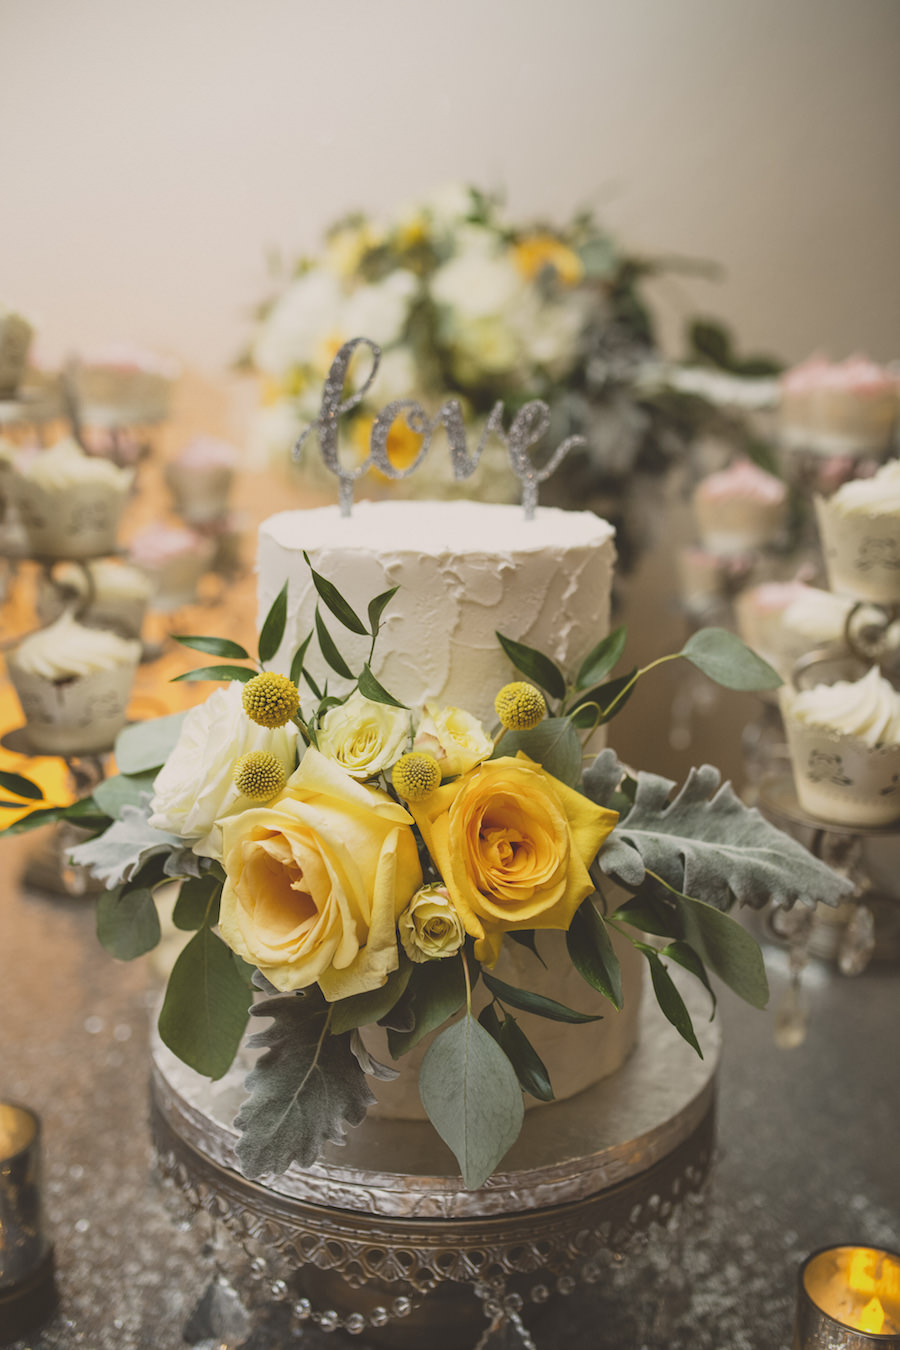 Two Tier Round White Wedding Cake with Yellow Roses and Greenery on Silver Cake Stand with Love Cake Topper